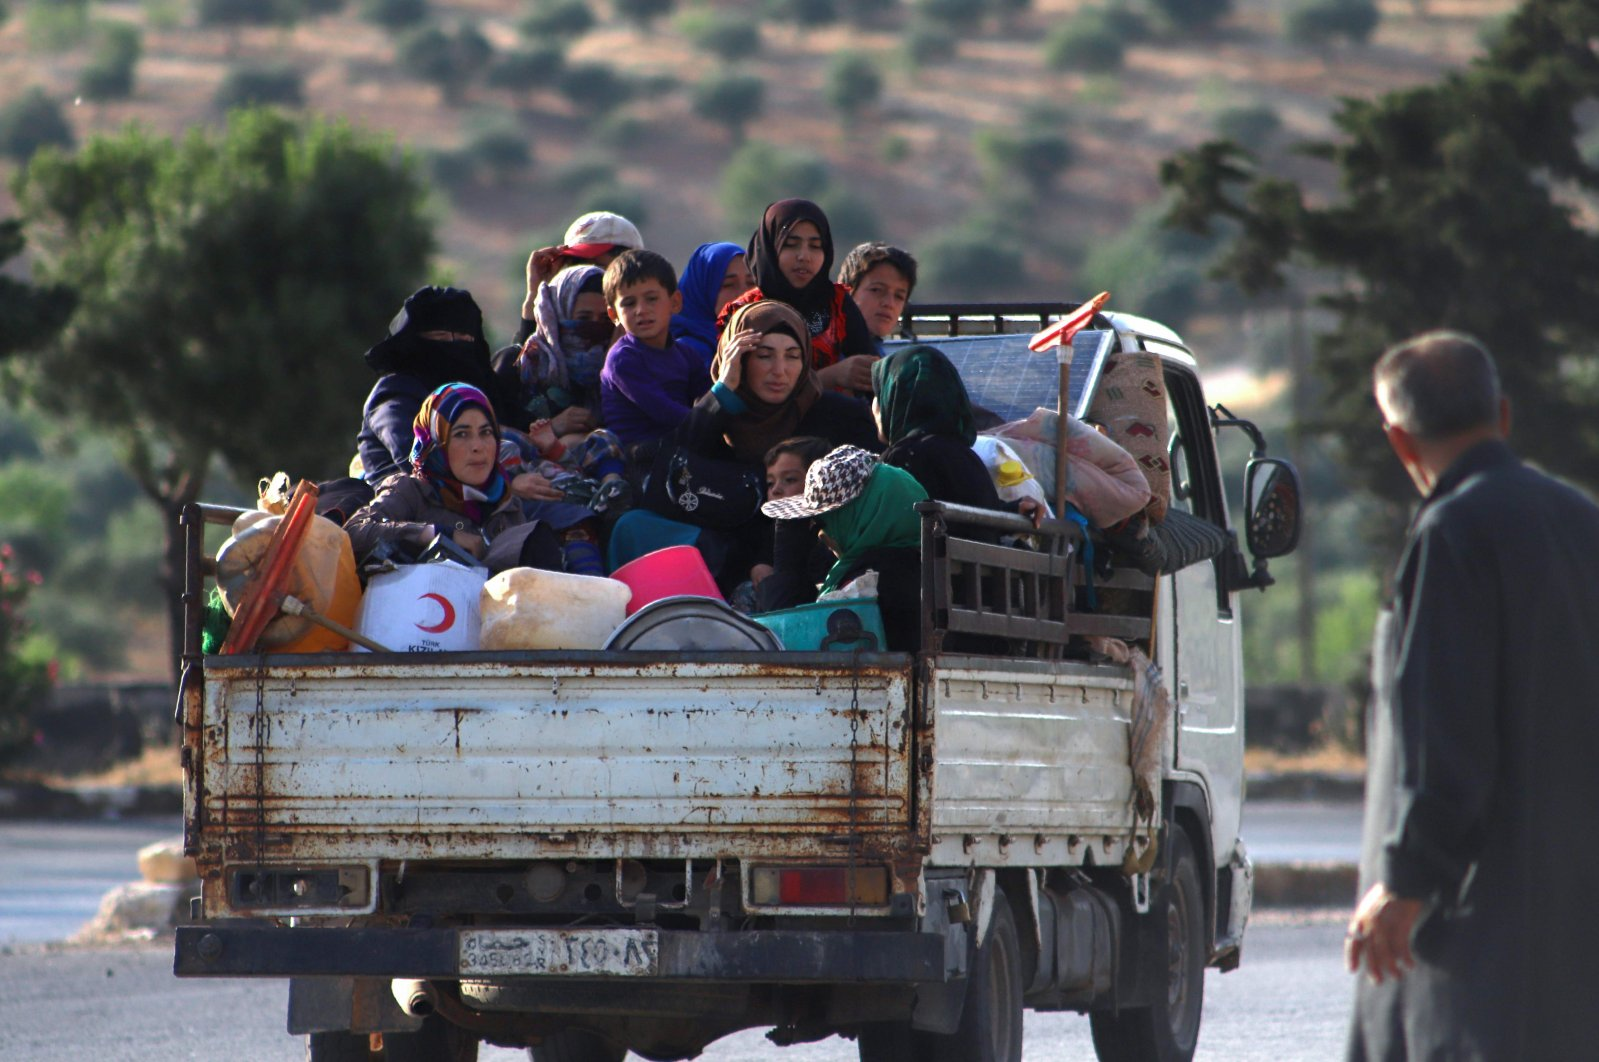 Displaced Syrians sit in the back of a truck loaded with belongings as they flee along the M4 highway, in Ariha in the opposition-held northwestern Syrian province of Idlib, June 8, 2020. (AFP Photo)